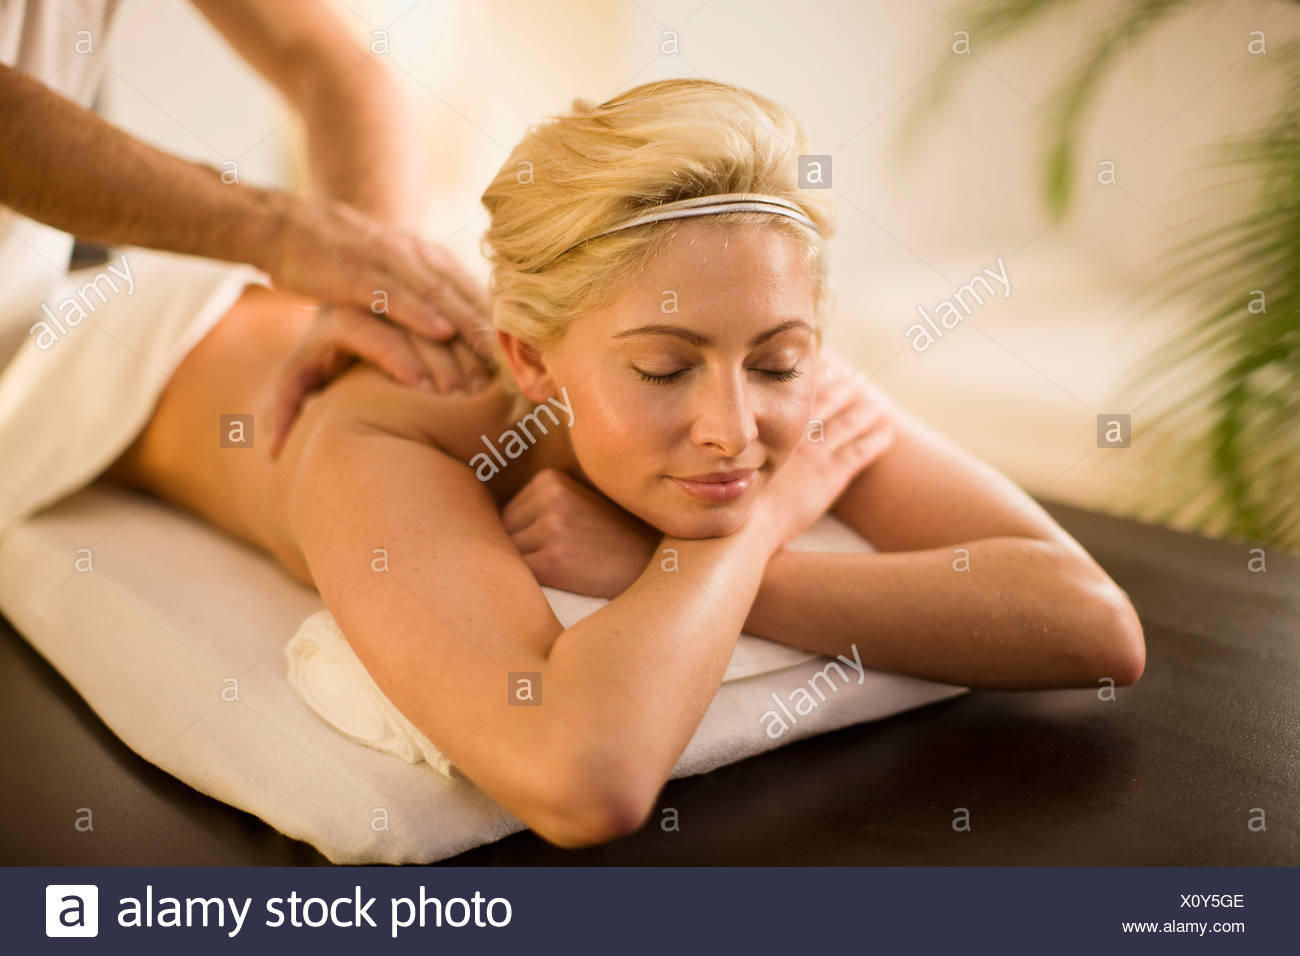 a day in a wellness spa Stock Photo